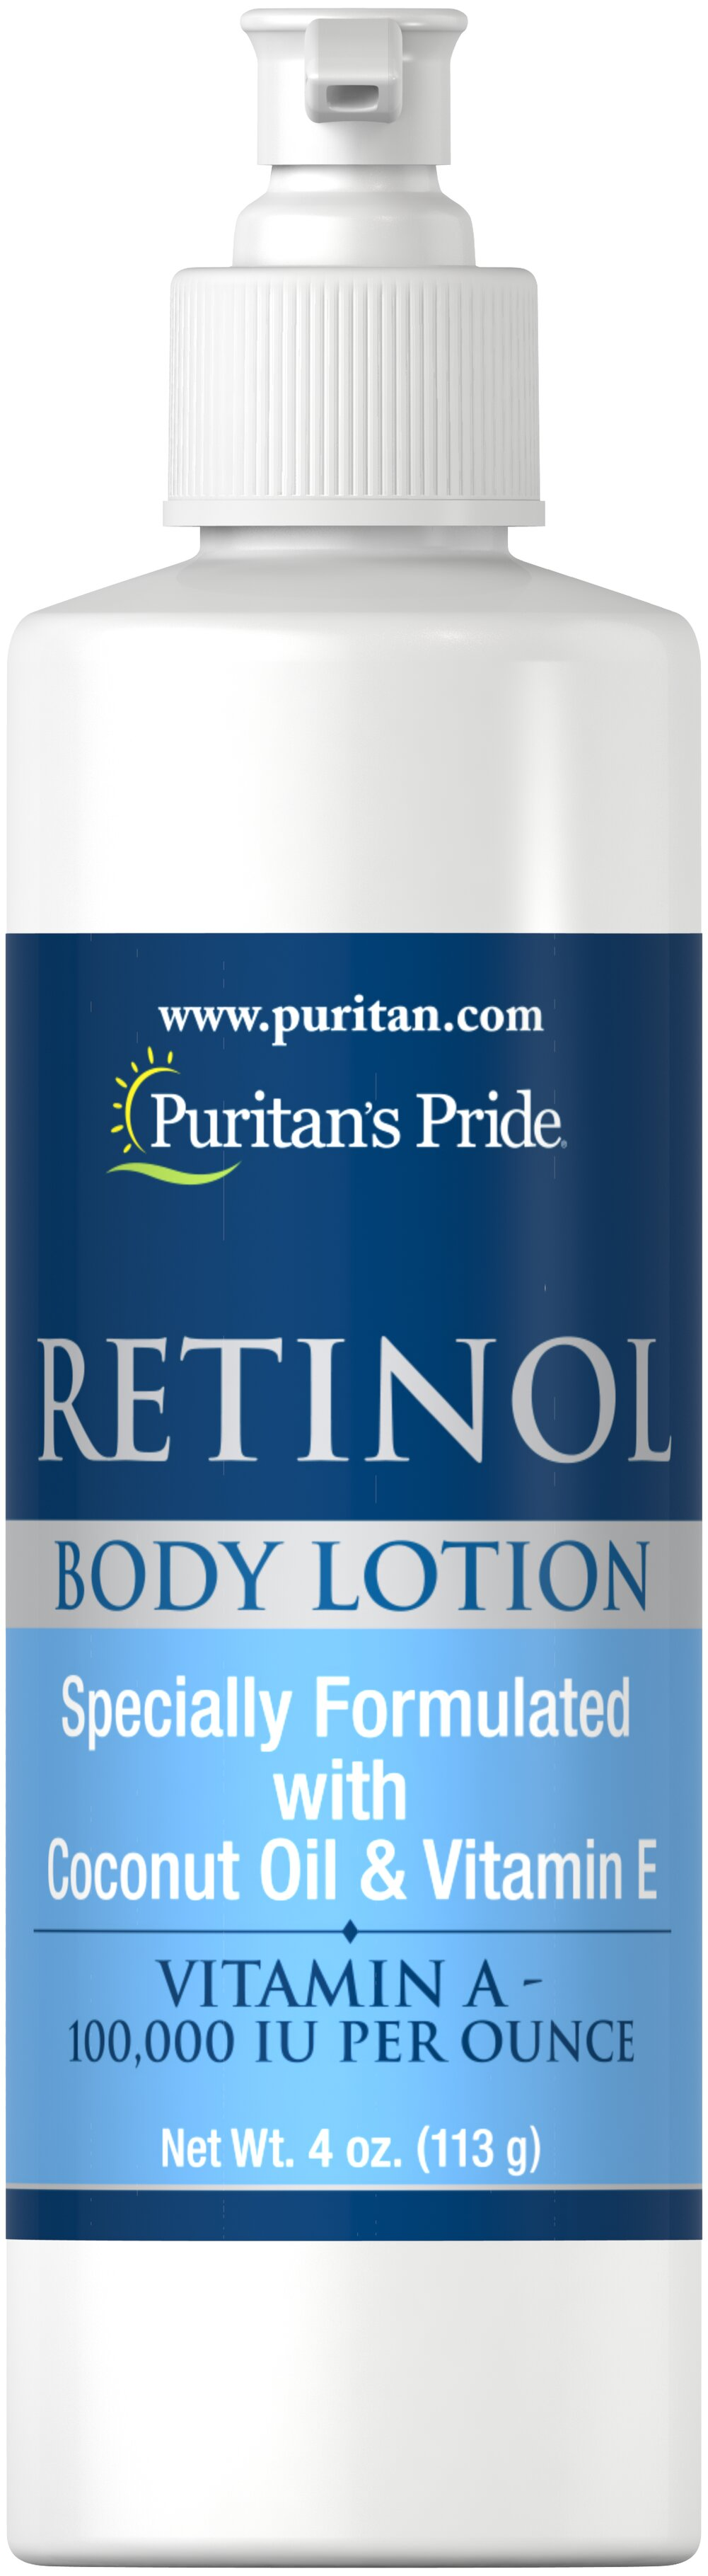 Retinol Body Lotion (Vitamin A 100,000 IU Per Ounce) <p>Vitamin A 100,000 IU per Ounce </p><p>Vitamin A is probably the most important skin vitamin for the appearance of the skin. Vitamin A is also one of the few vitamins that can be absorbed through the skin to provide direct benefits. Let your skin take advantage of the benefits of Vitamin A Lotion.</p> 4 oz Lotion 100000 IU $11.89